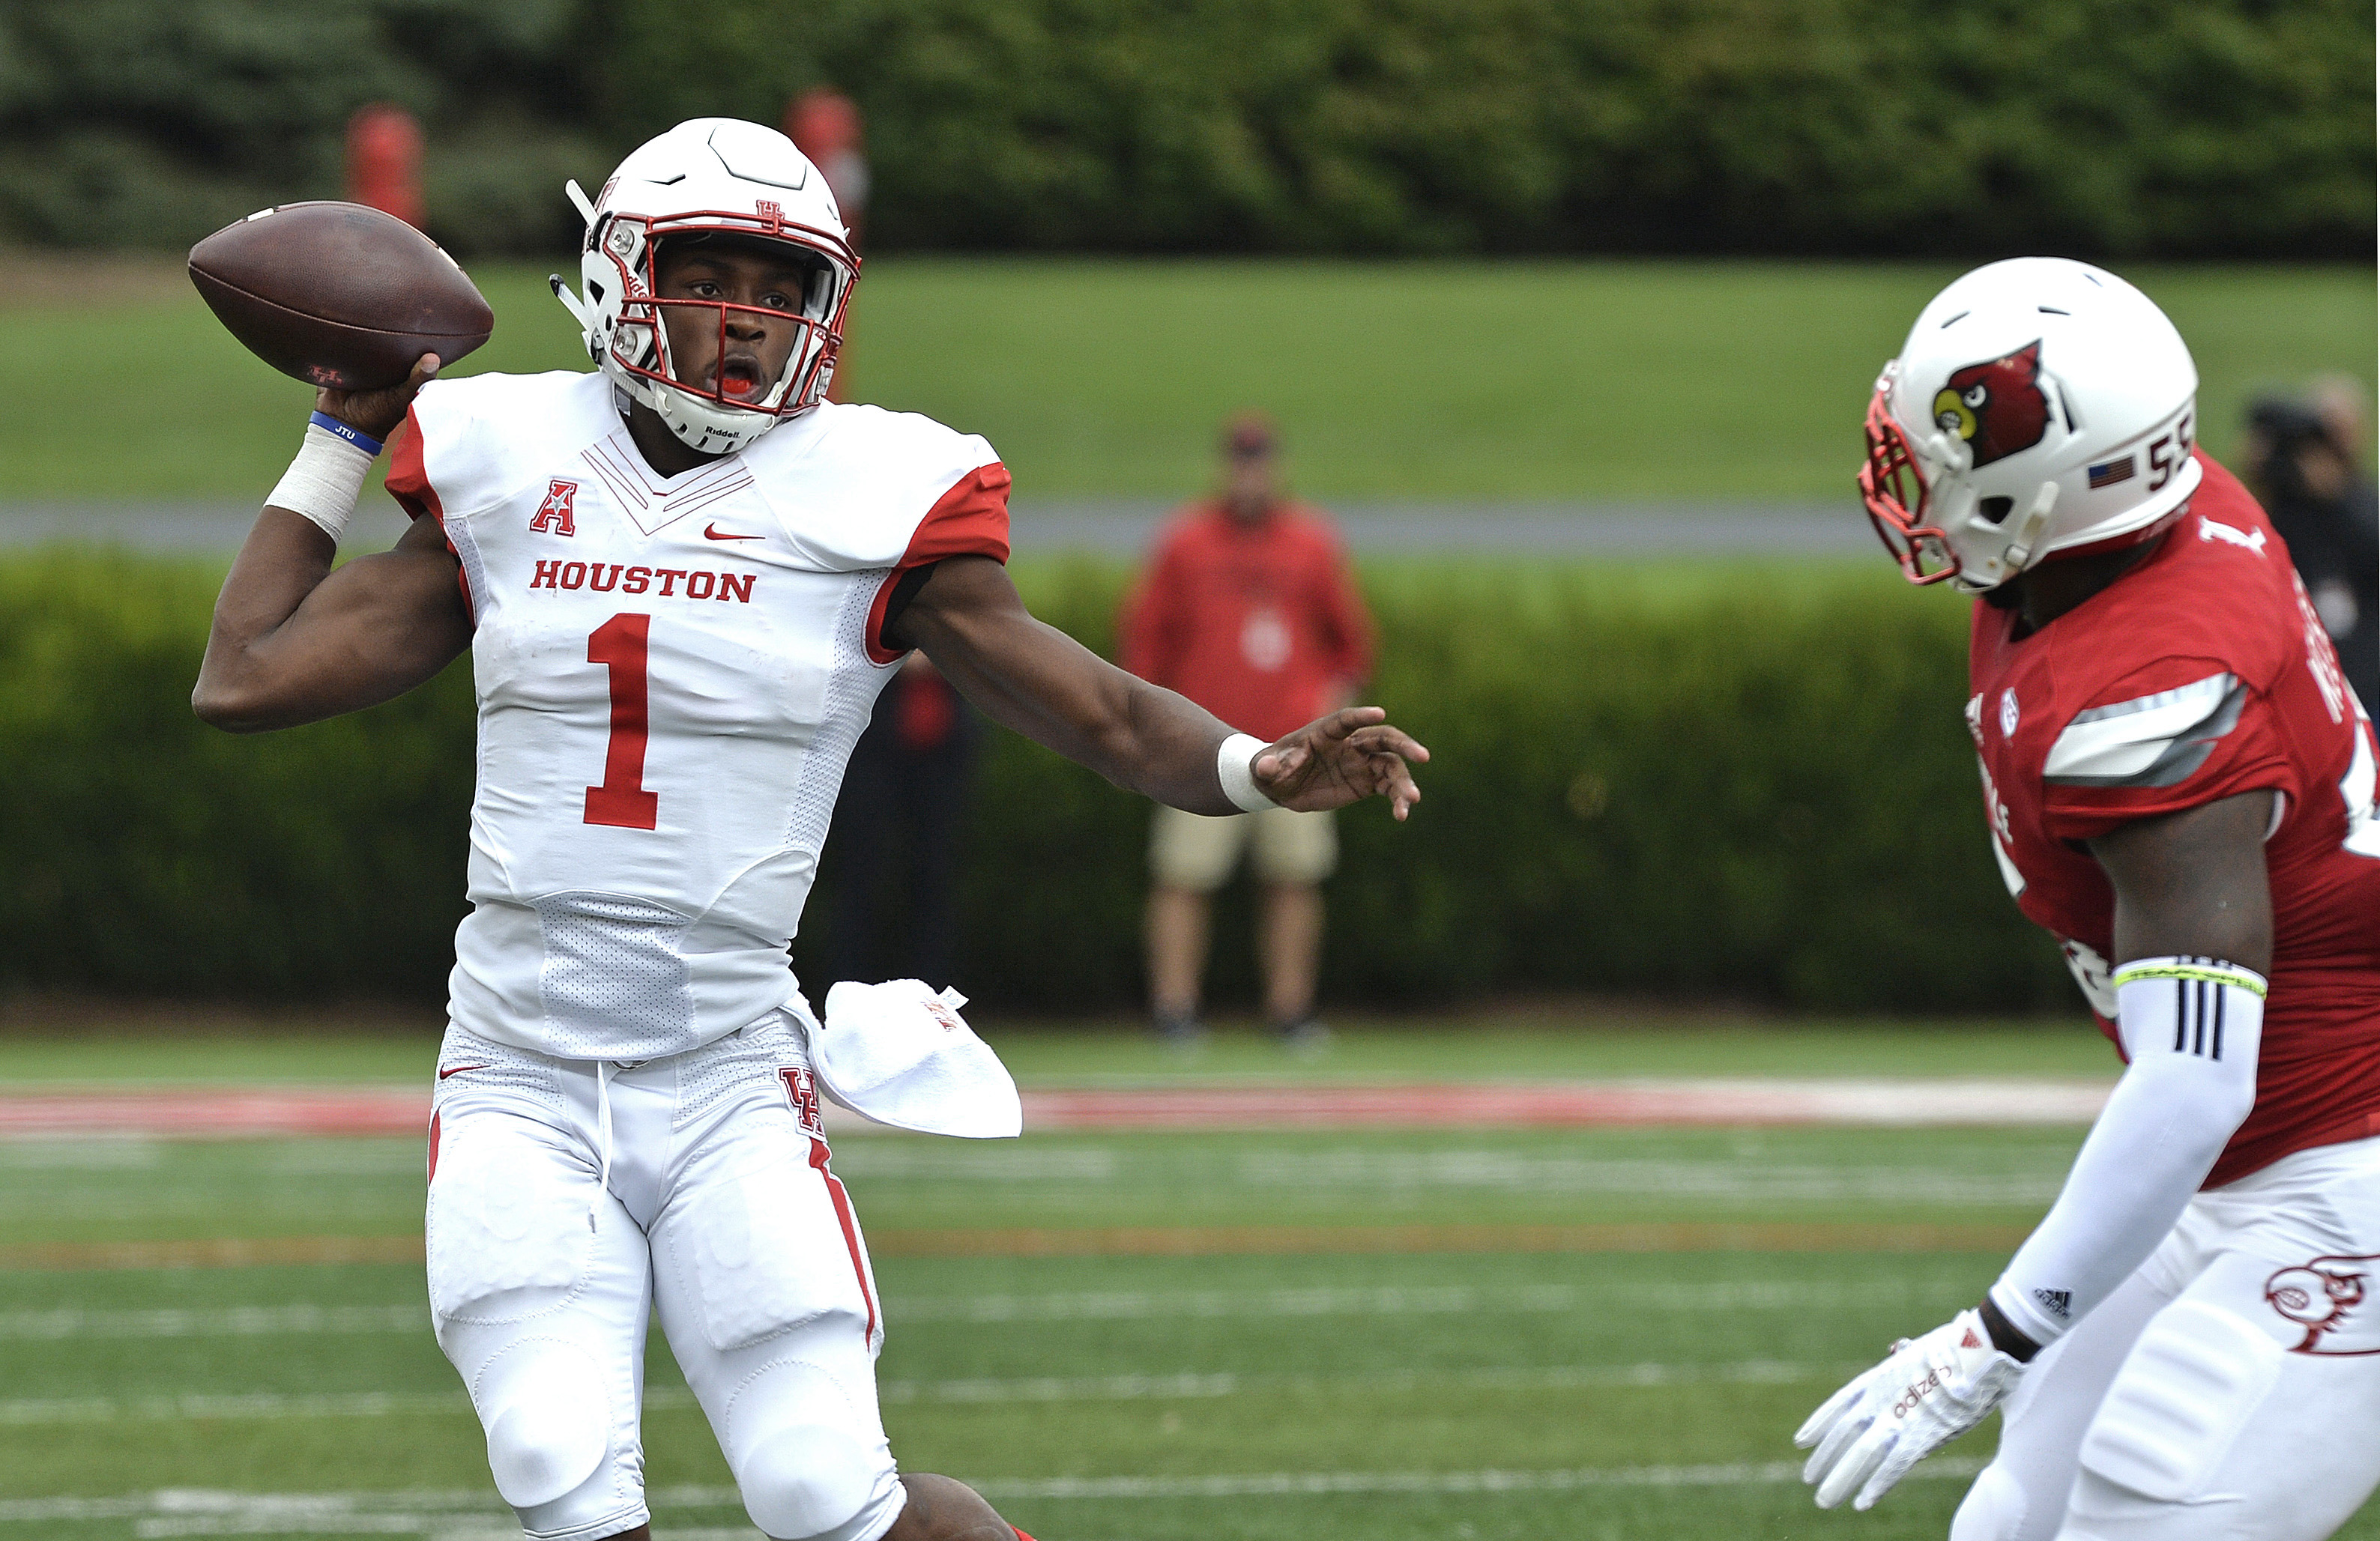 Houston's Greg Ward Jr. (1) attempts a pass away from the pursuit of Louisville's Keith Kelsey (55) during the first half of an NCAA college football game in Louisville, Ky. Saturday, Sept. 12, 2015. (AP Photo/Timothy D. Easley)